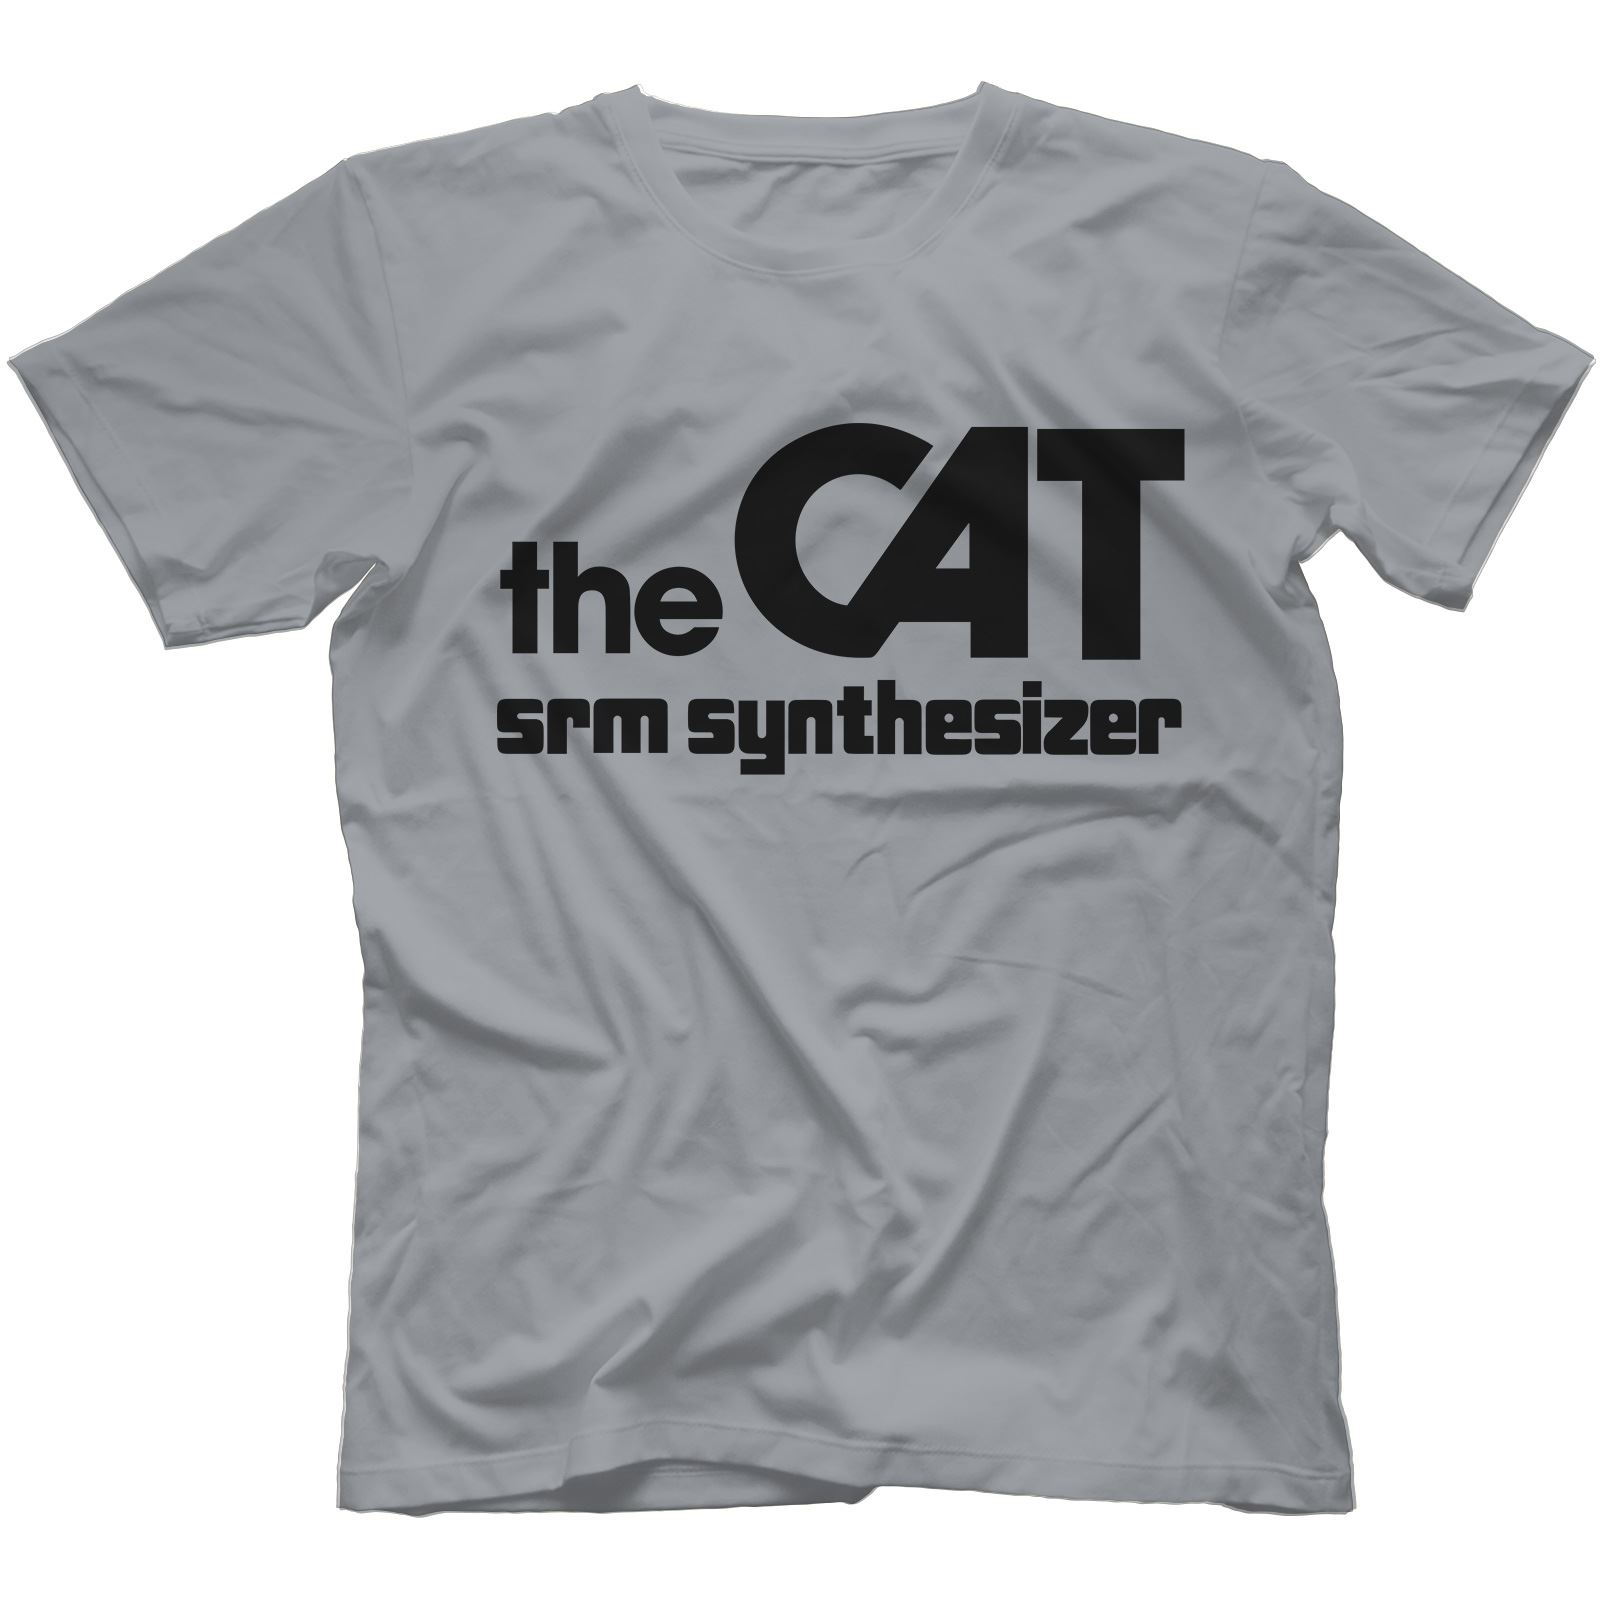 The-Cat-SRM-Synthesiser-T-Shirt-100-Cotton-Retro-Analog-Arp-Odyssey Indexbild 28